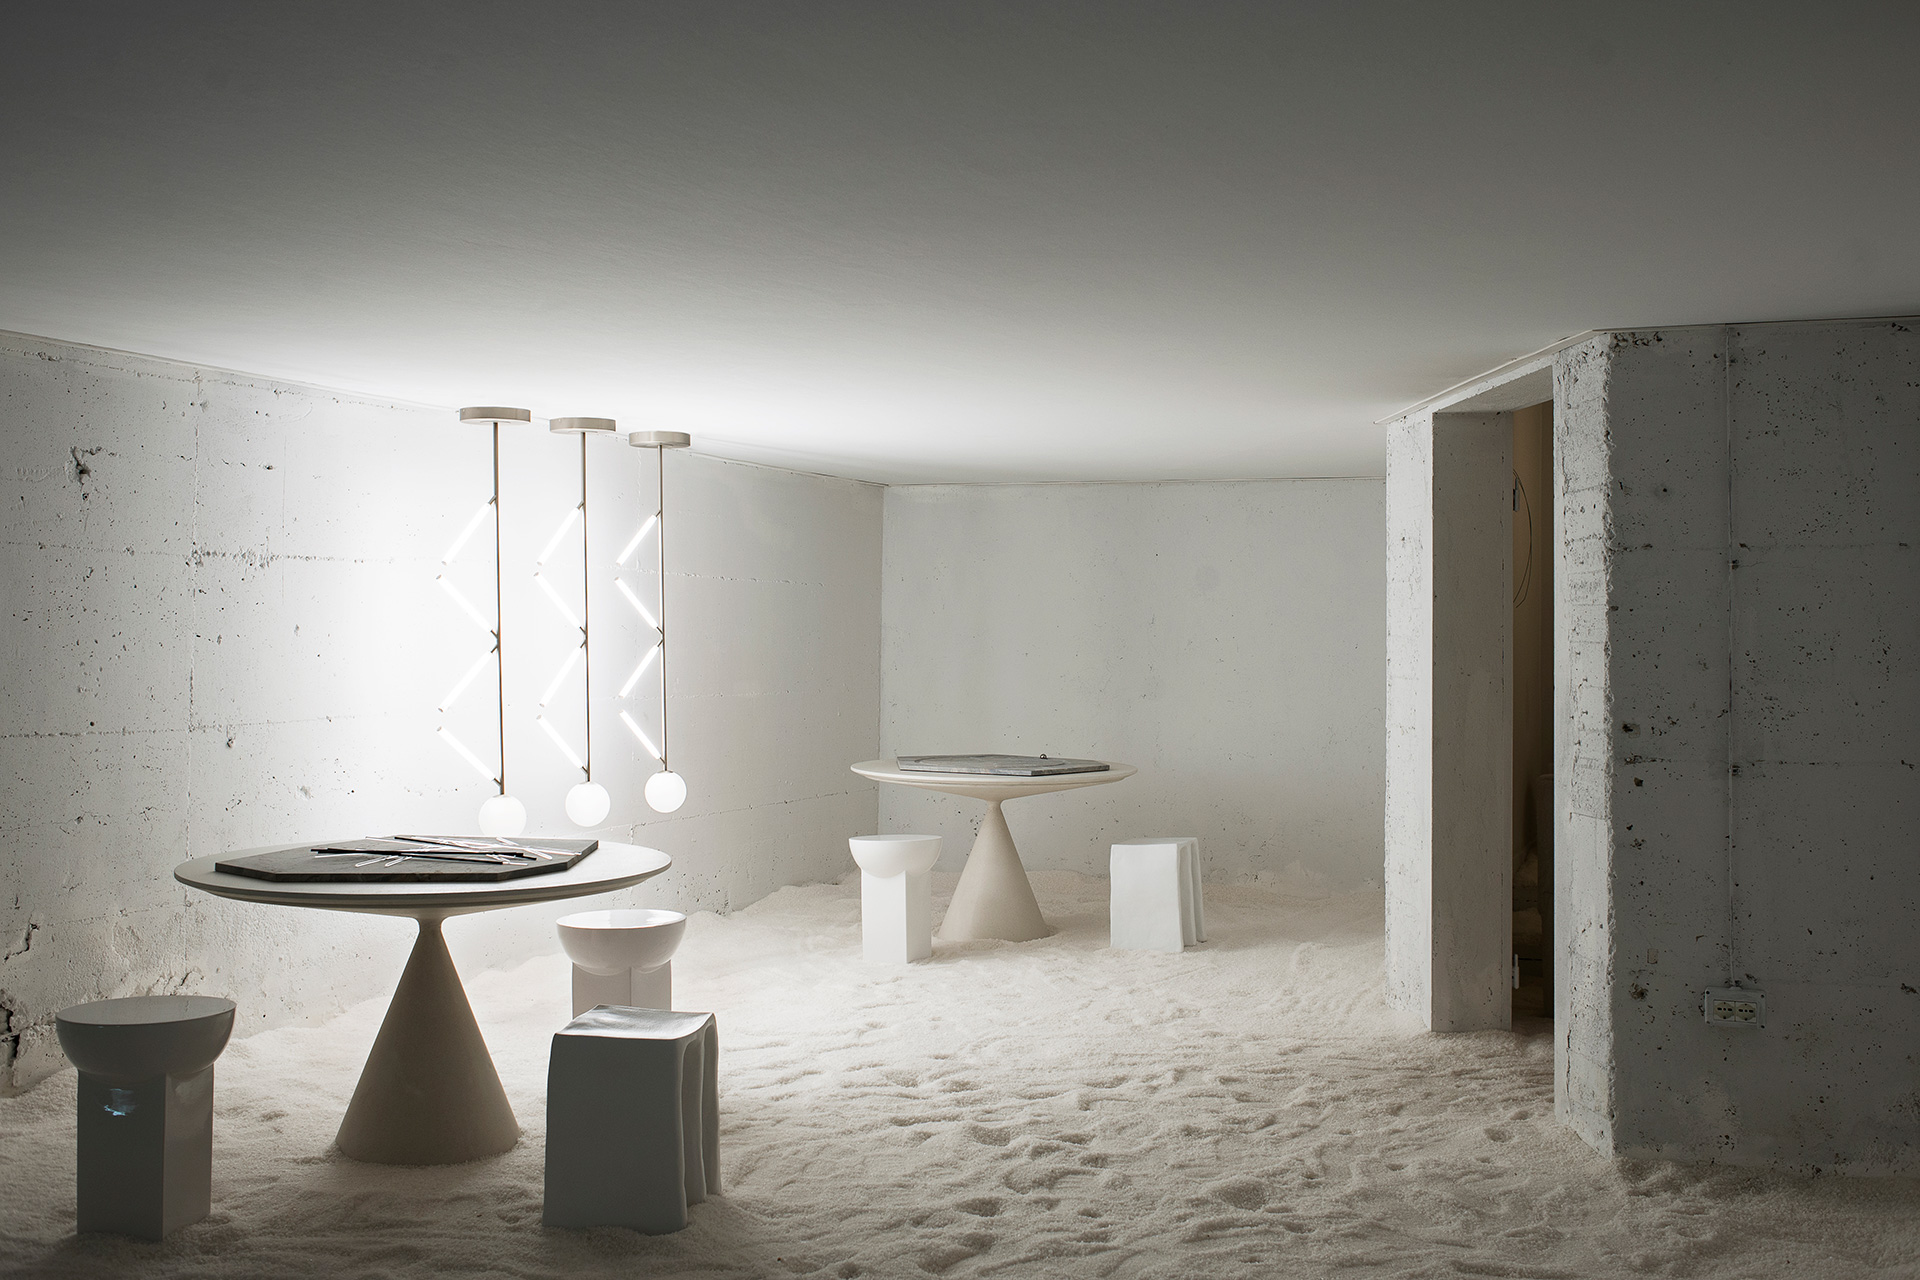 Società Mantica - the room with salt floor and white walls| Studiopepe| Les Arcanistes - The Future is un/written| Salone del Mobile| STIR